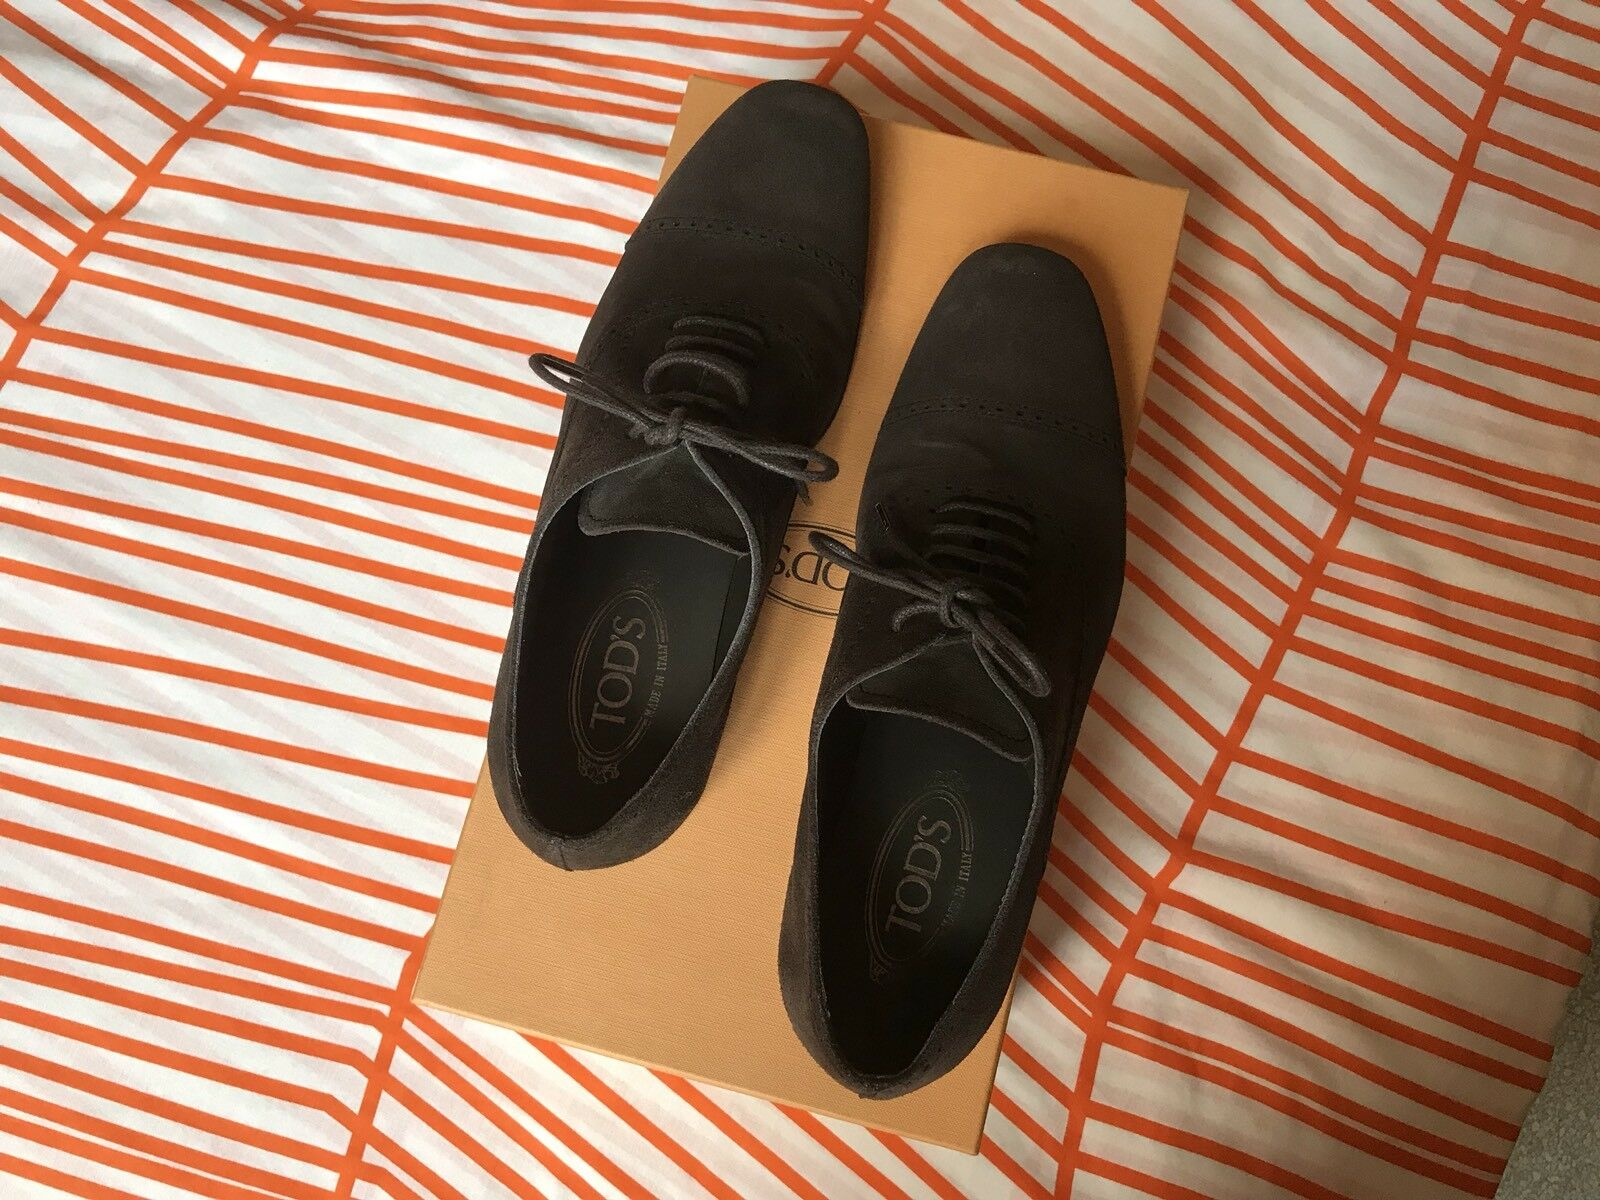 TODS TOD'S Oxford Classica Scamosciata Pelle Scamosciata Classica braun braun Suede Lace-up Lace Up c5bf61